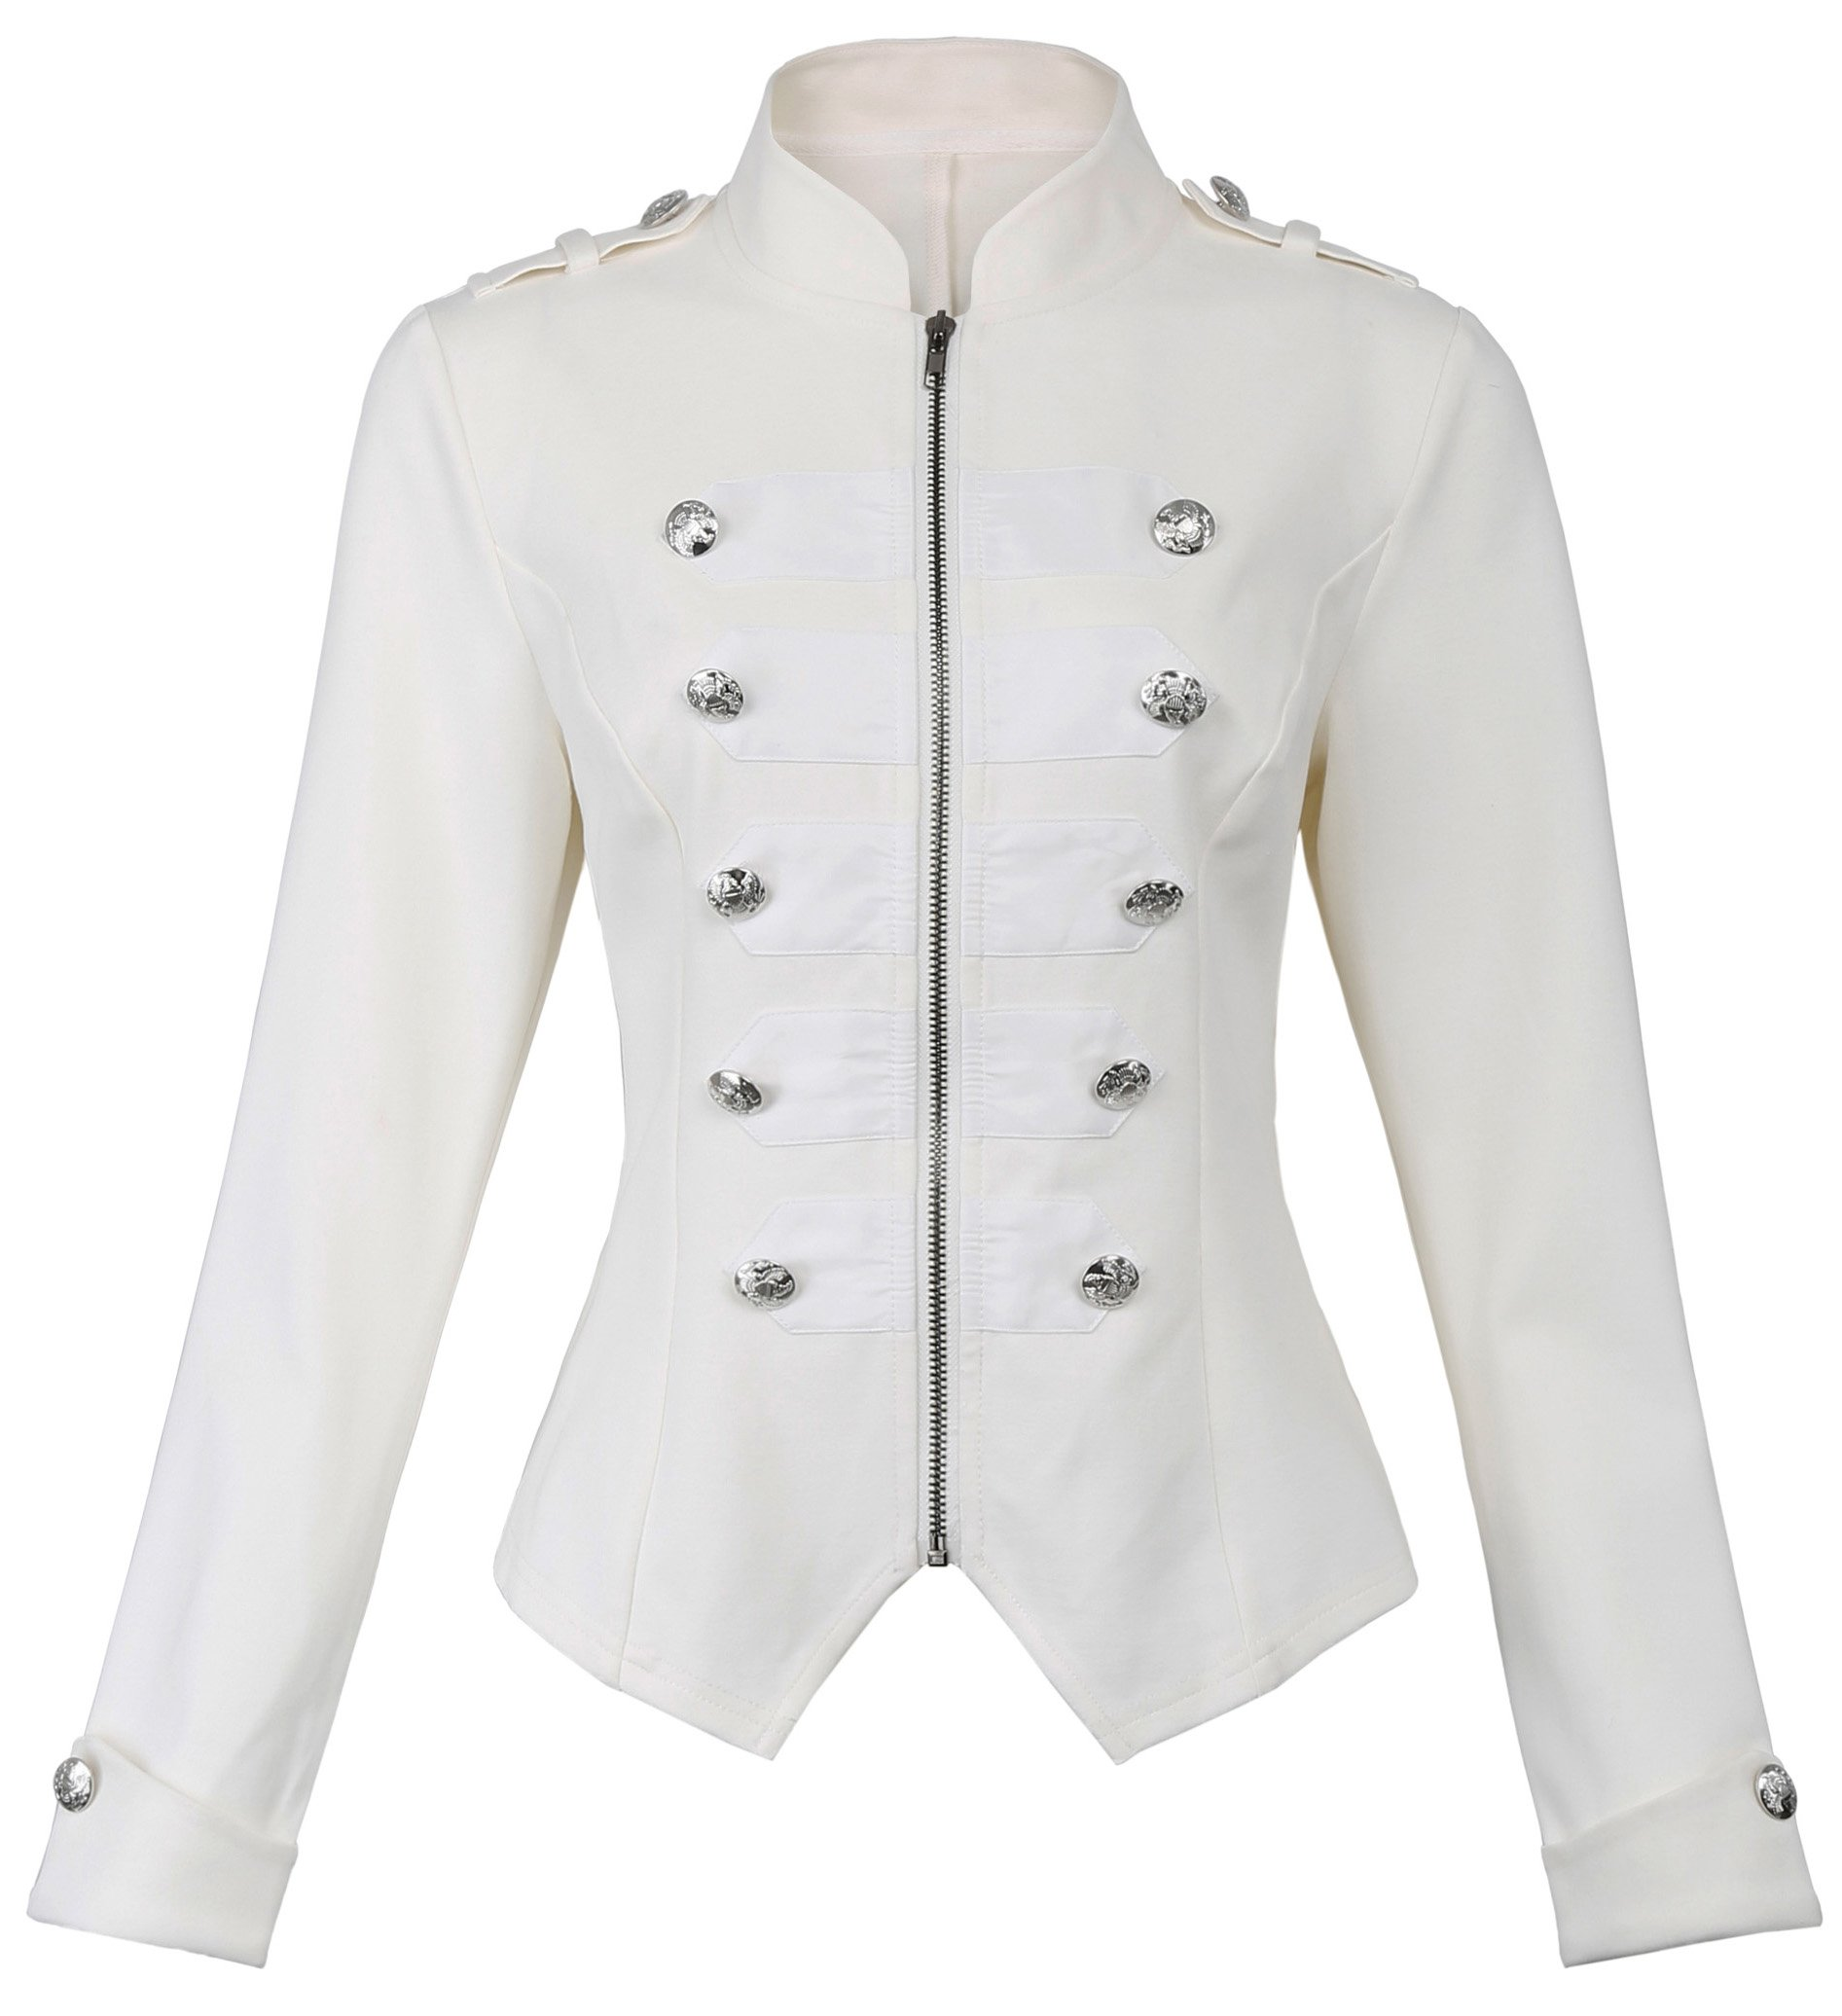 Kate Kasin Womens Victorian Steampunk Ringmaster Jacket Military Blazer (Off-White, Large) by Kate Kasin